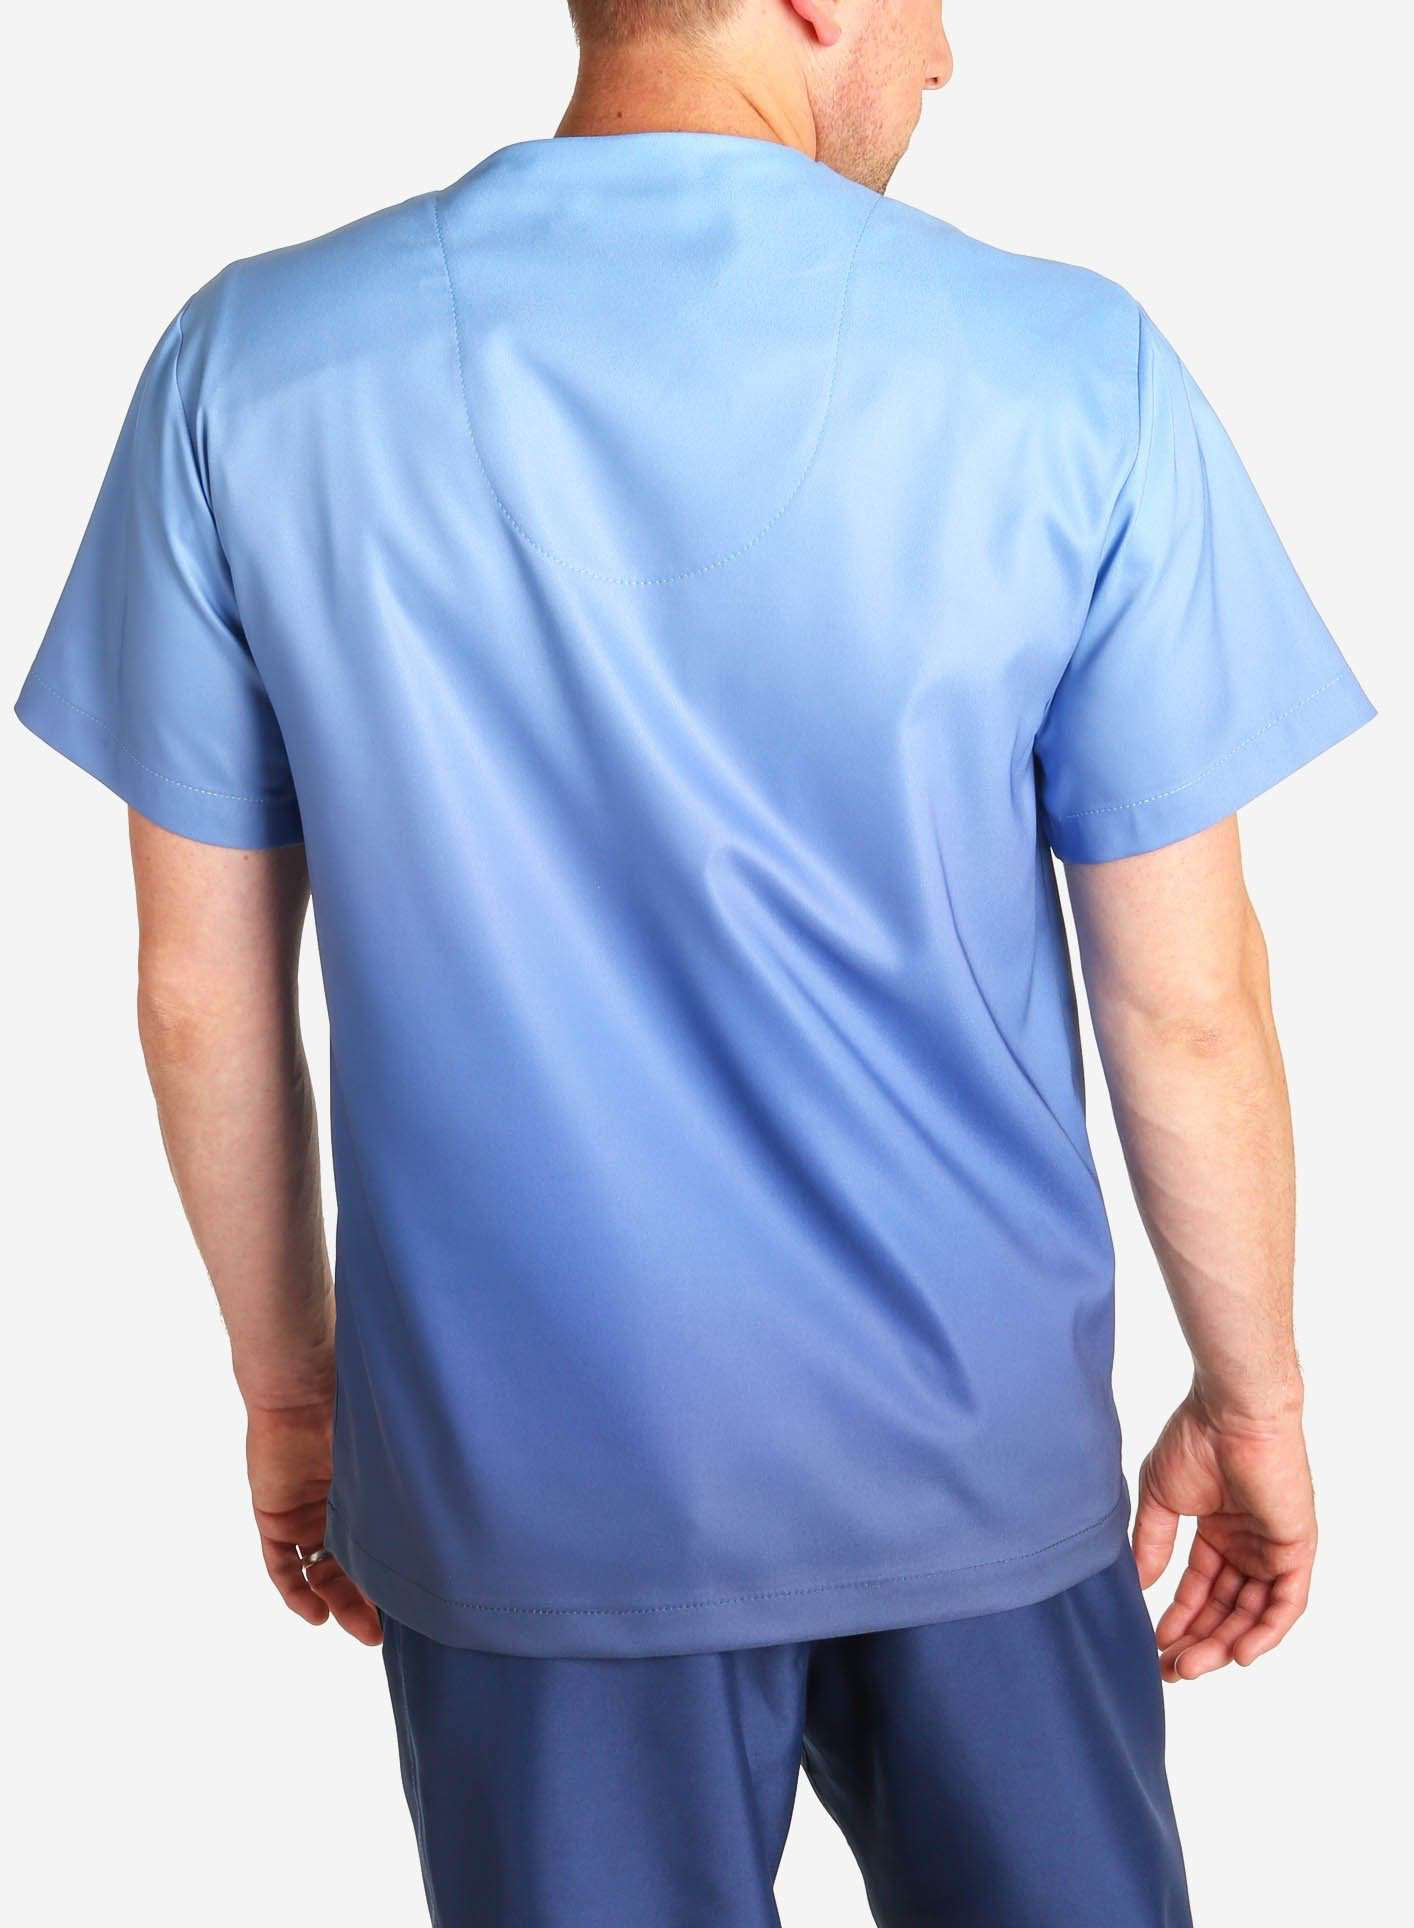 mens stretch scrub top in two tone blue ombre back